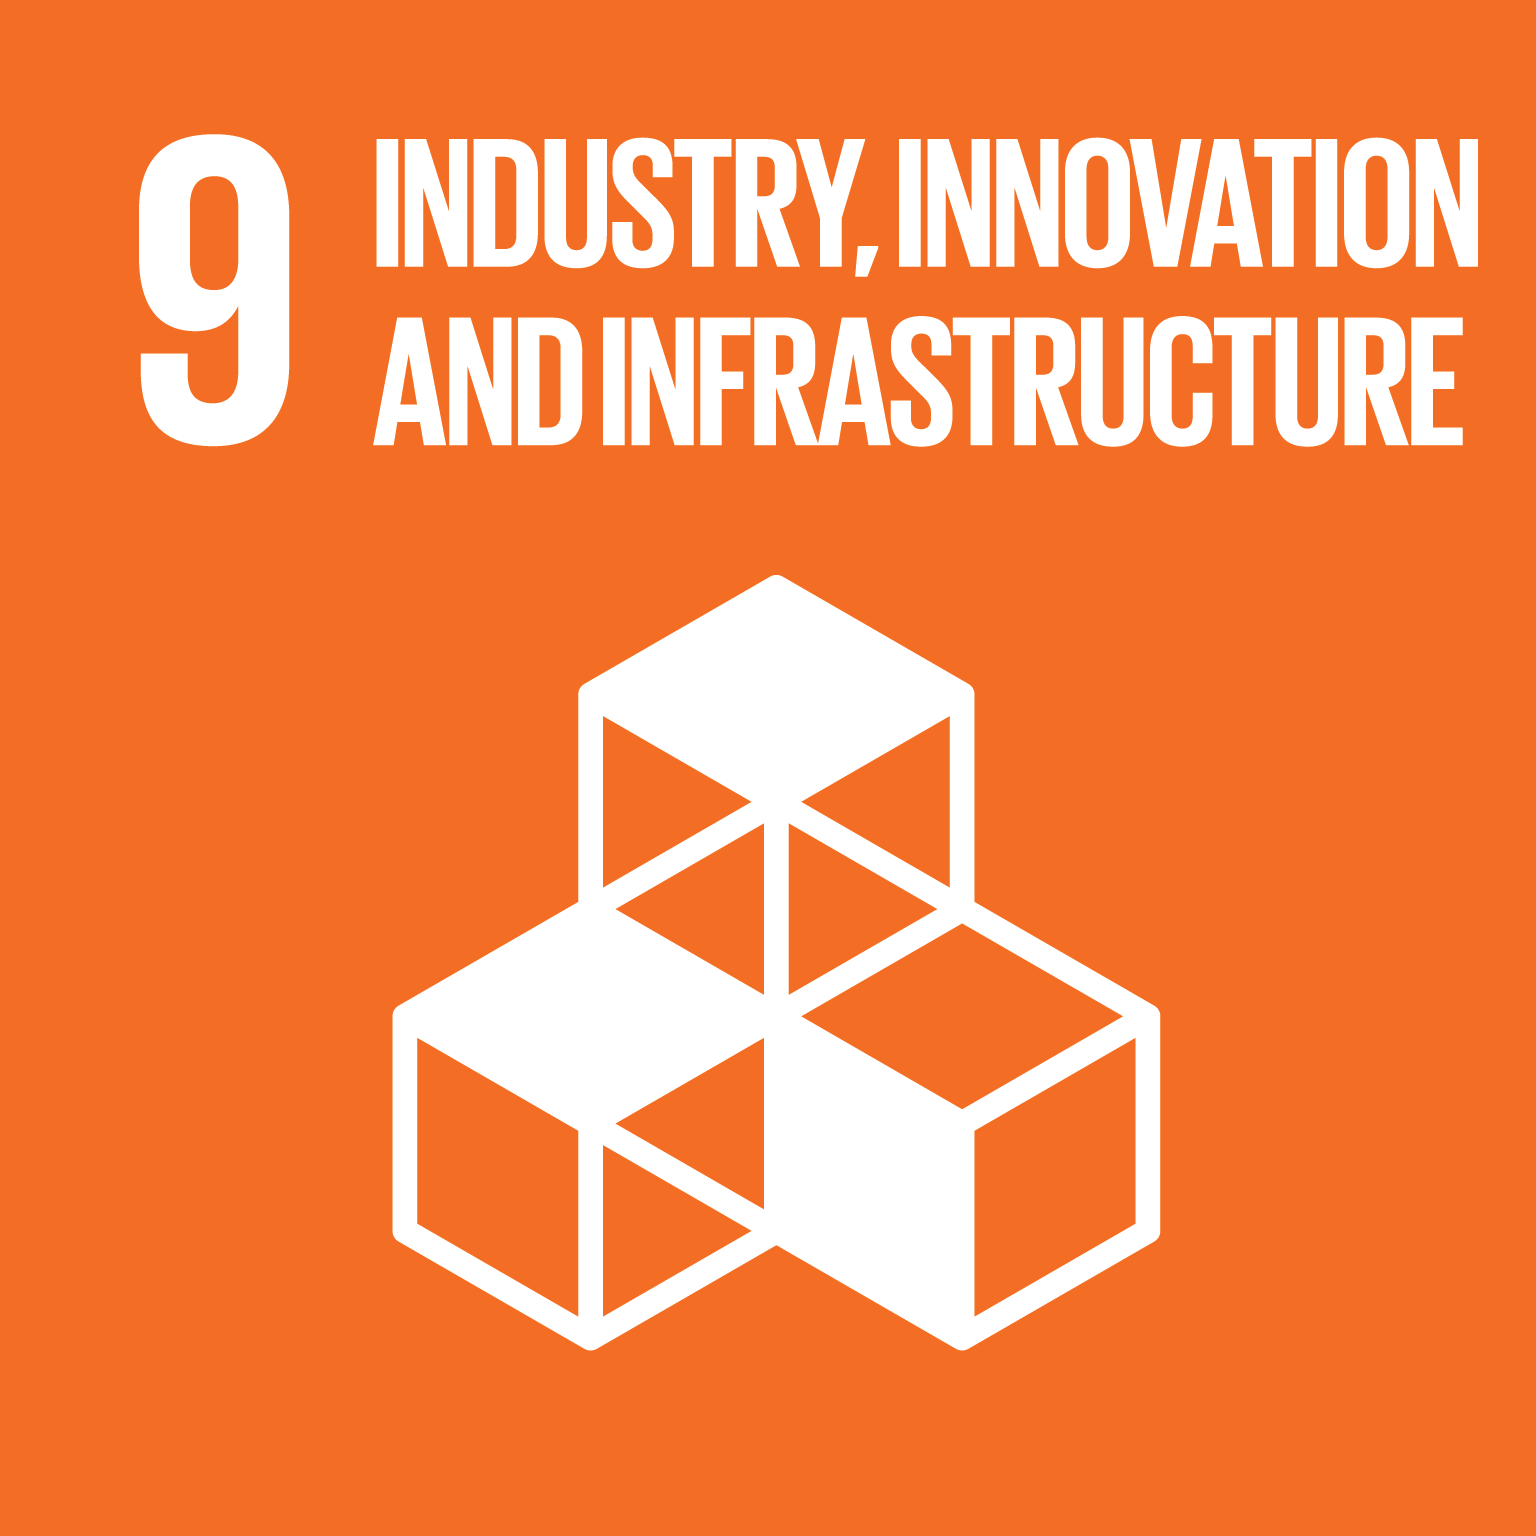 Representative image of SDG innovation and infrastructure